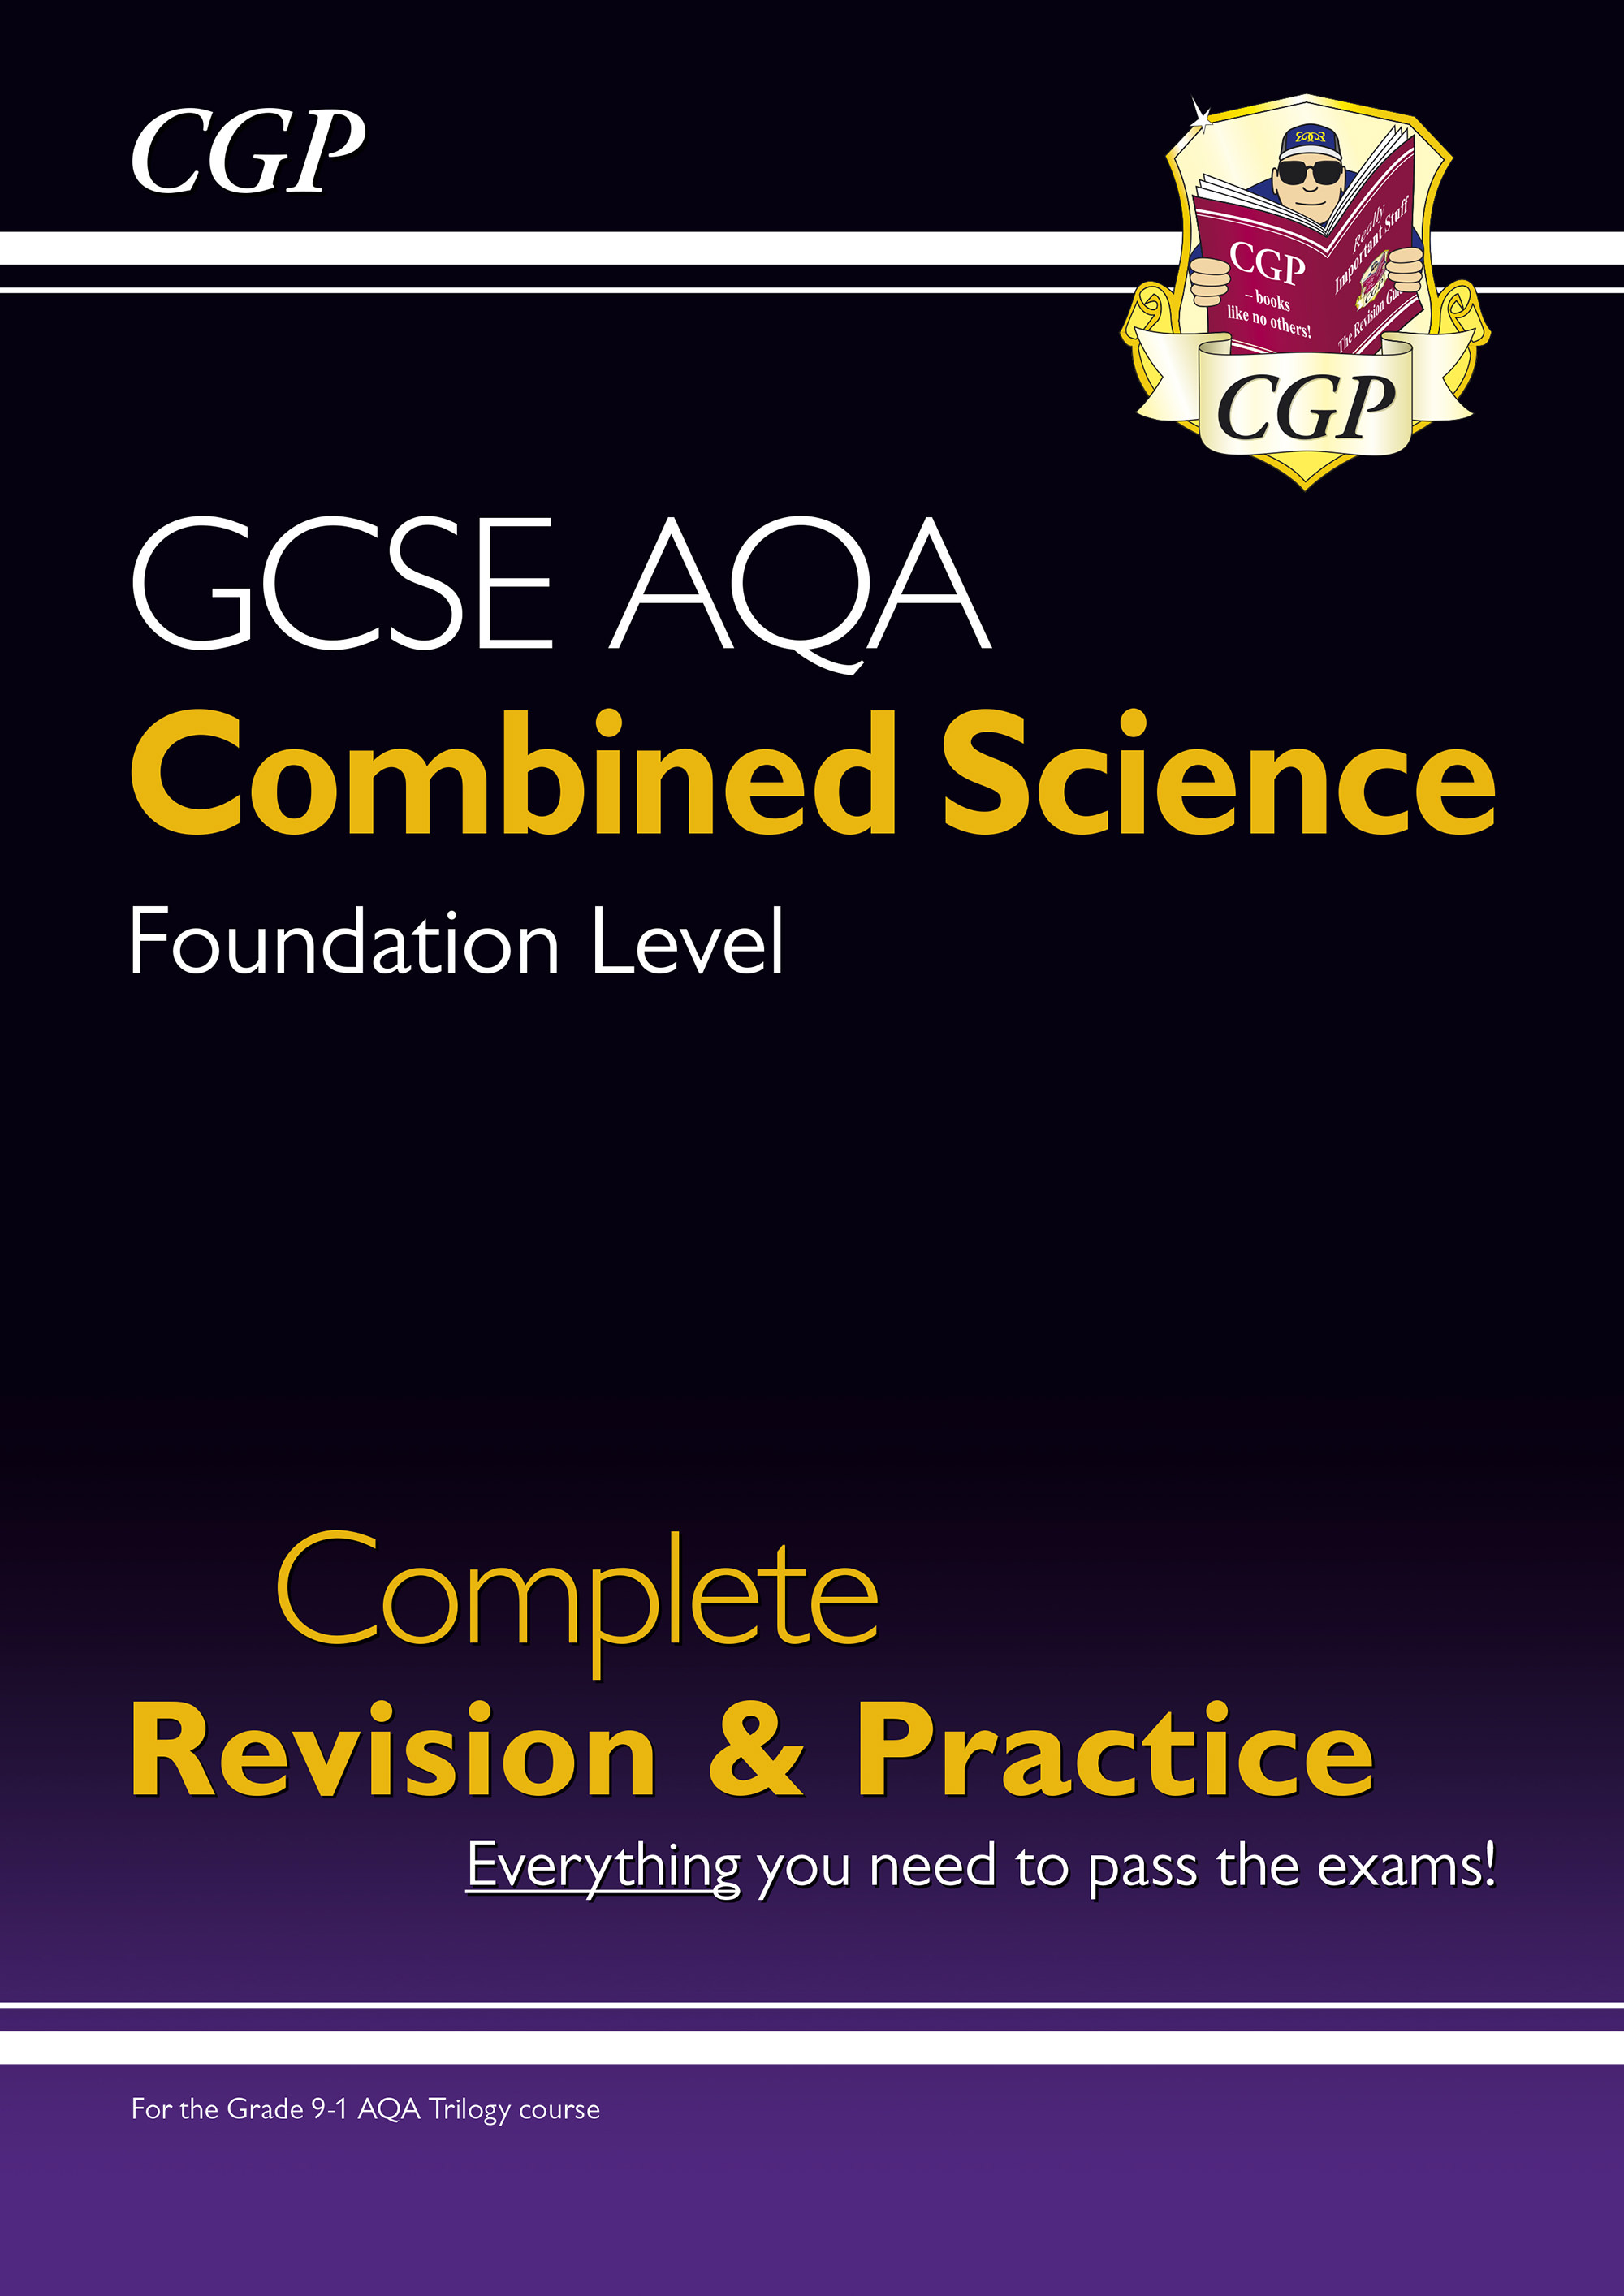 SCAFS41DK - New 9-1 GCSE Combined Science: AQA Foundation Complete Revision & Practice